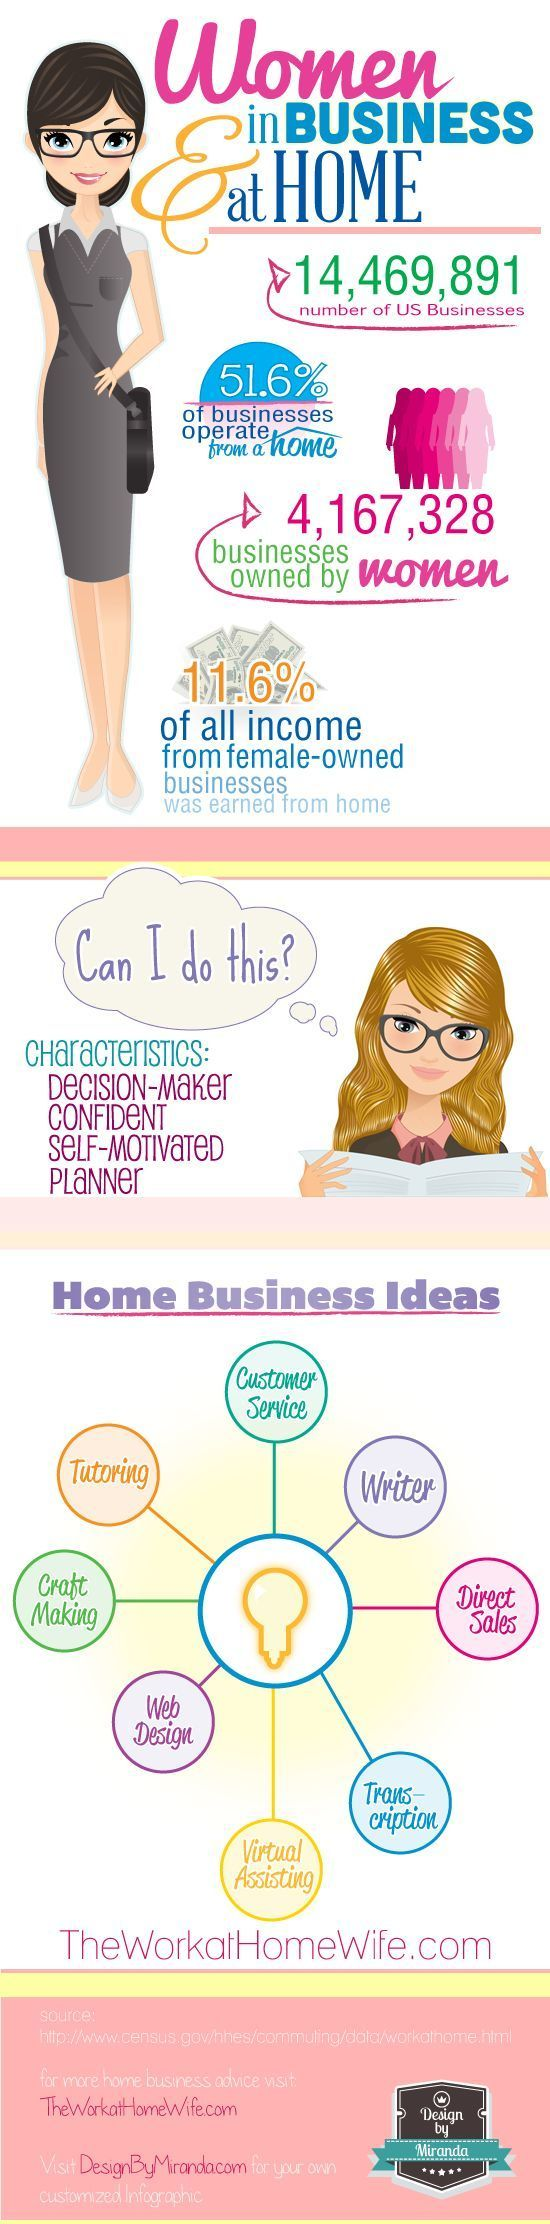 Women In Home-Based Business: Infographic | Pinterest | Business and ...